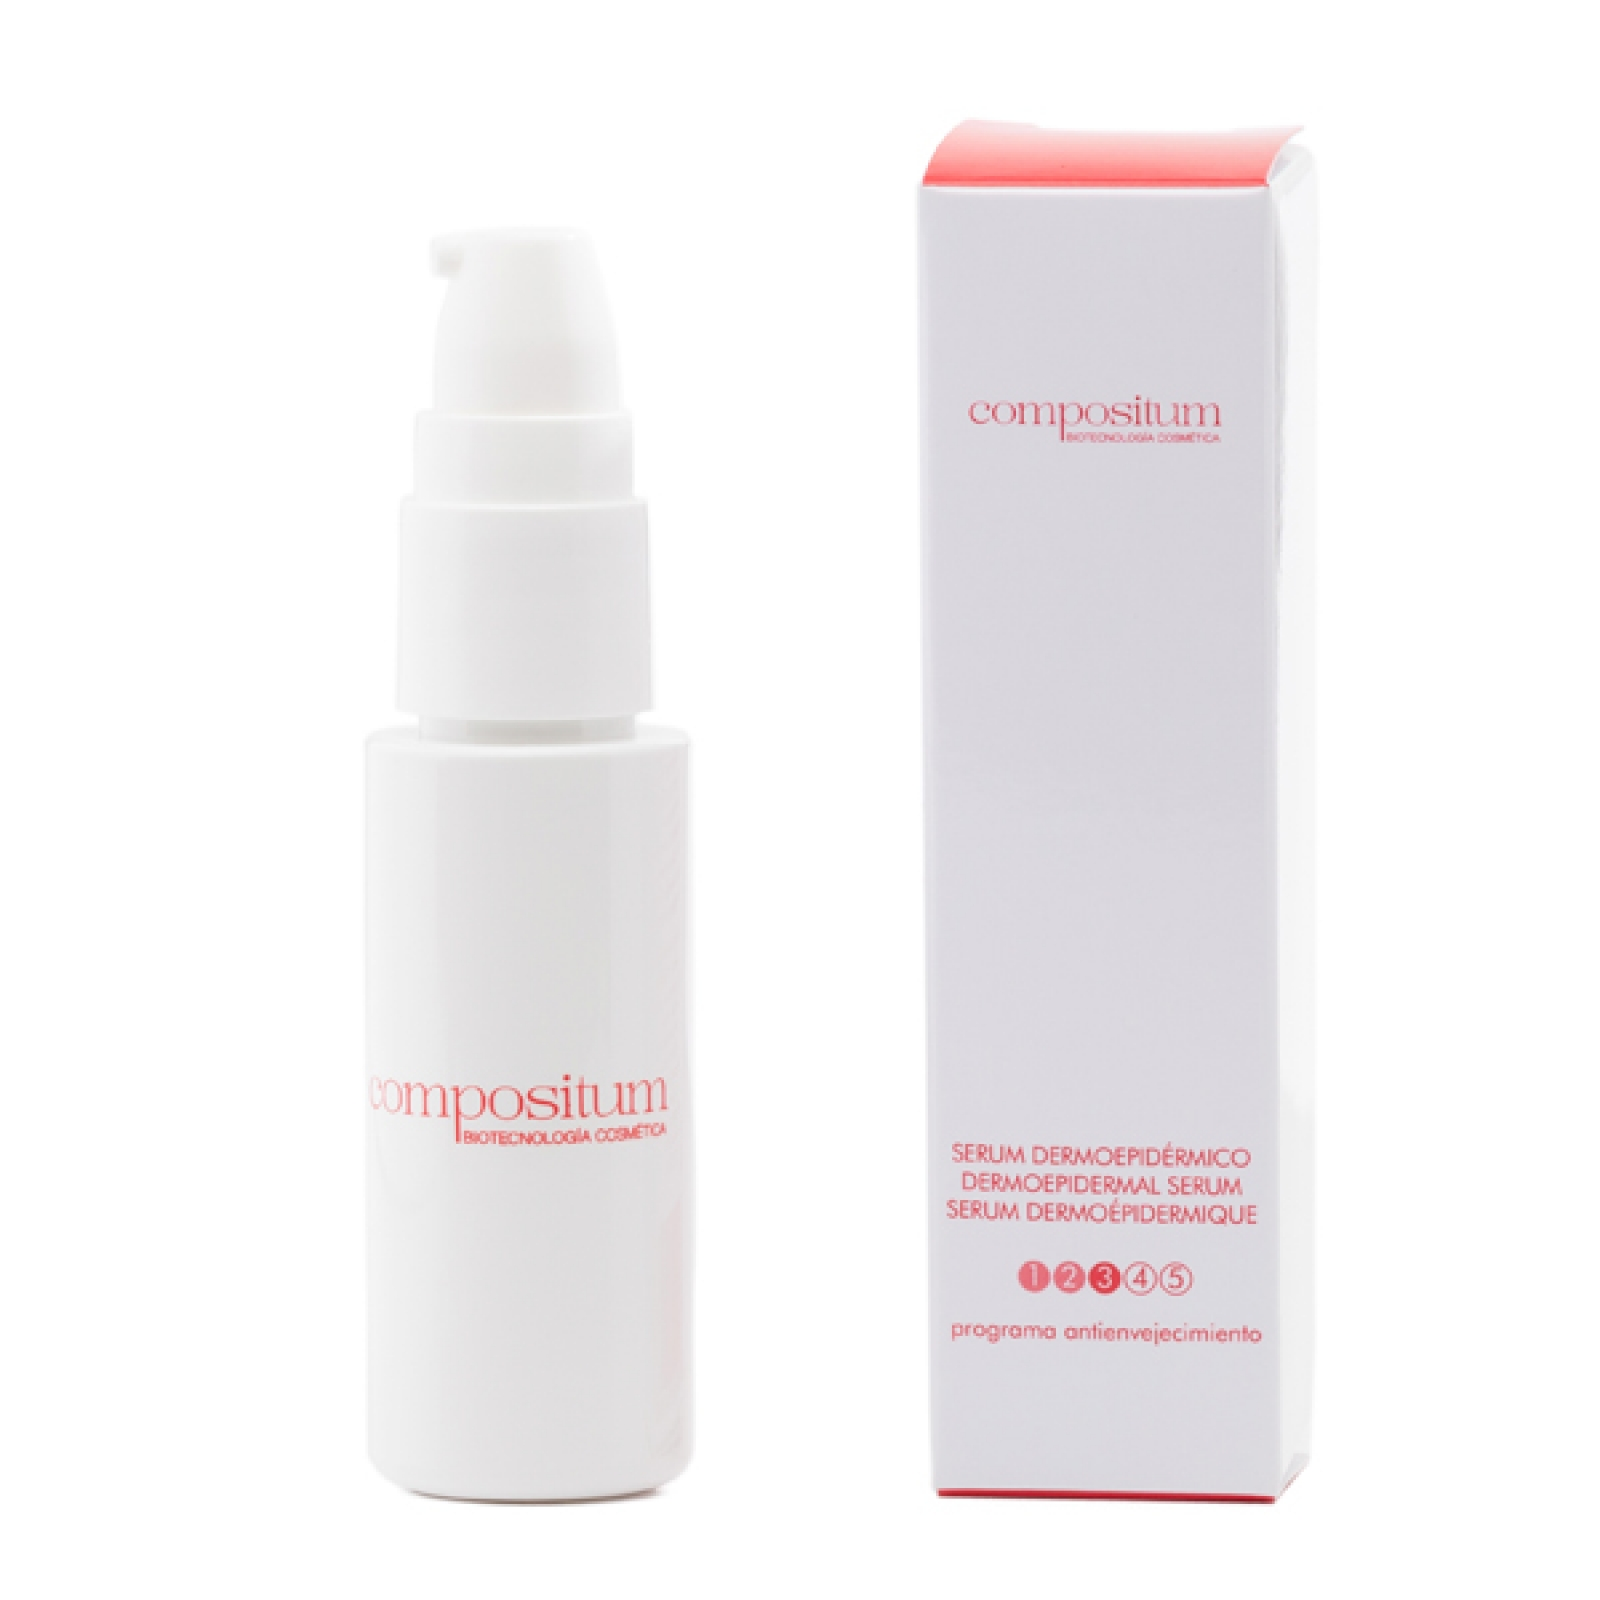 DERMOEPIDERMAL SERUM